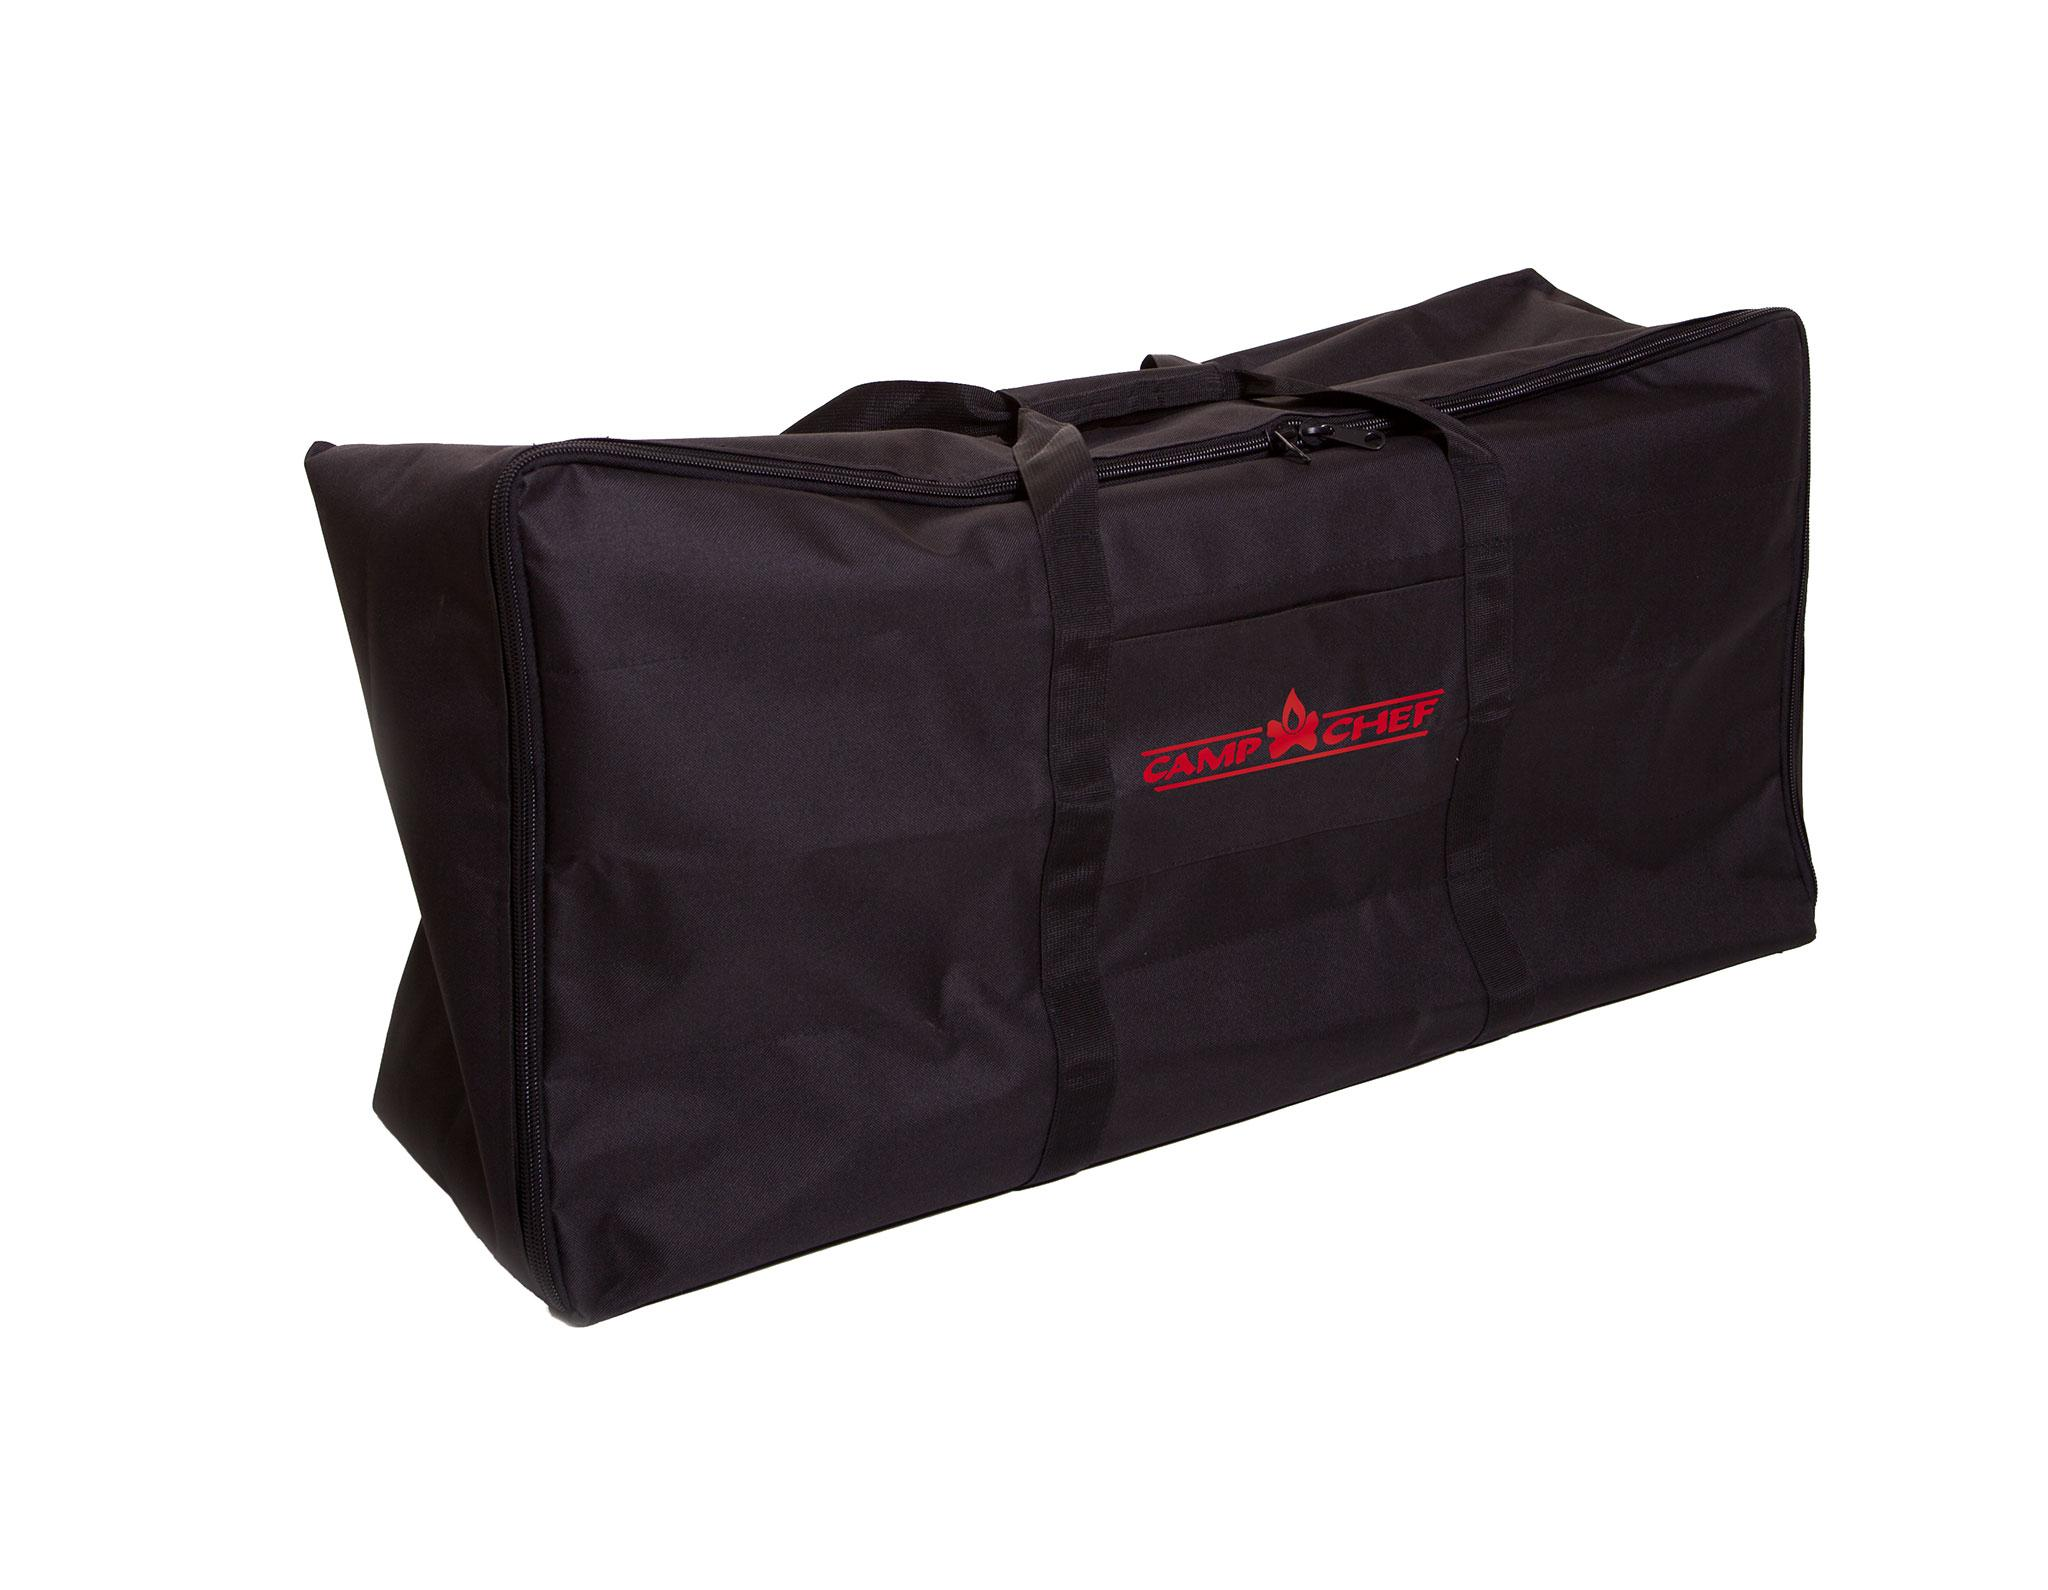 Renewed Mountain Series Stoves Camp Chef Carry Bag